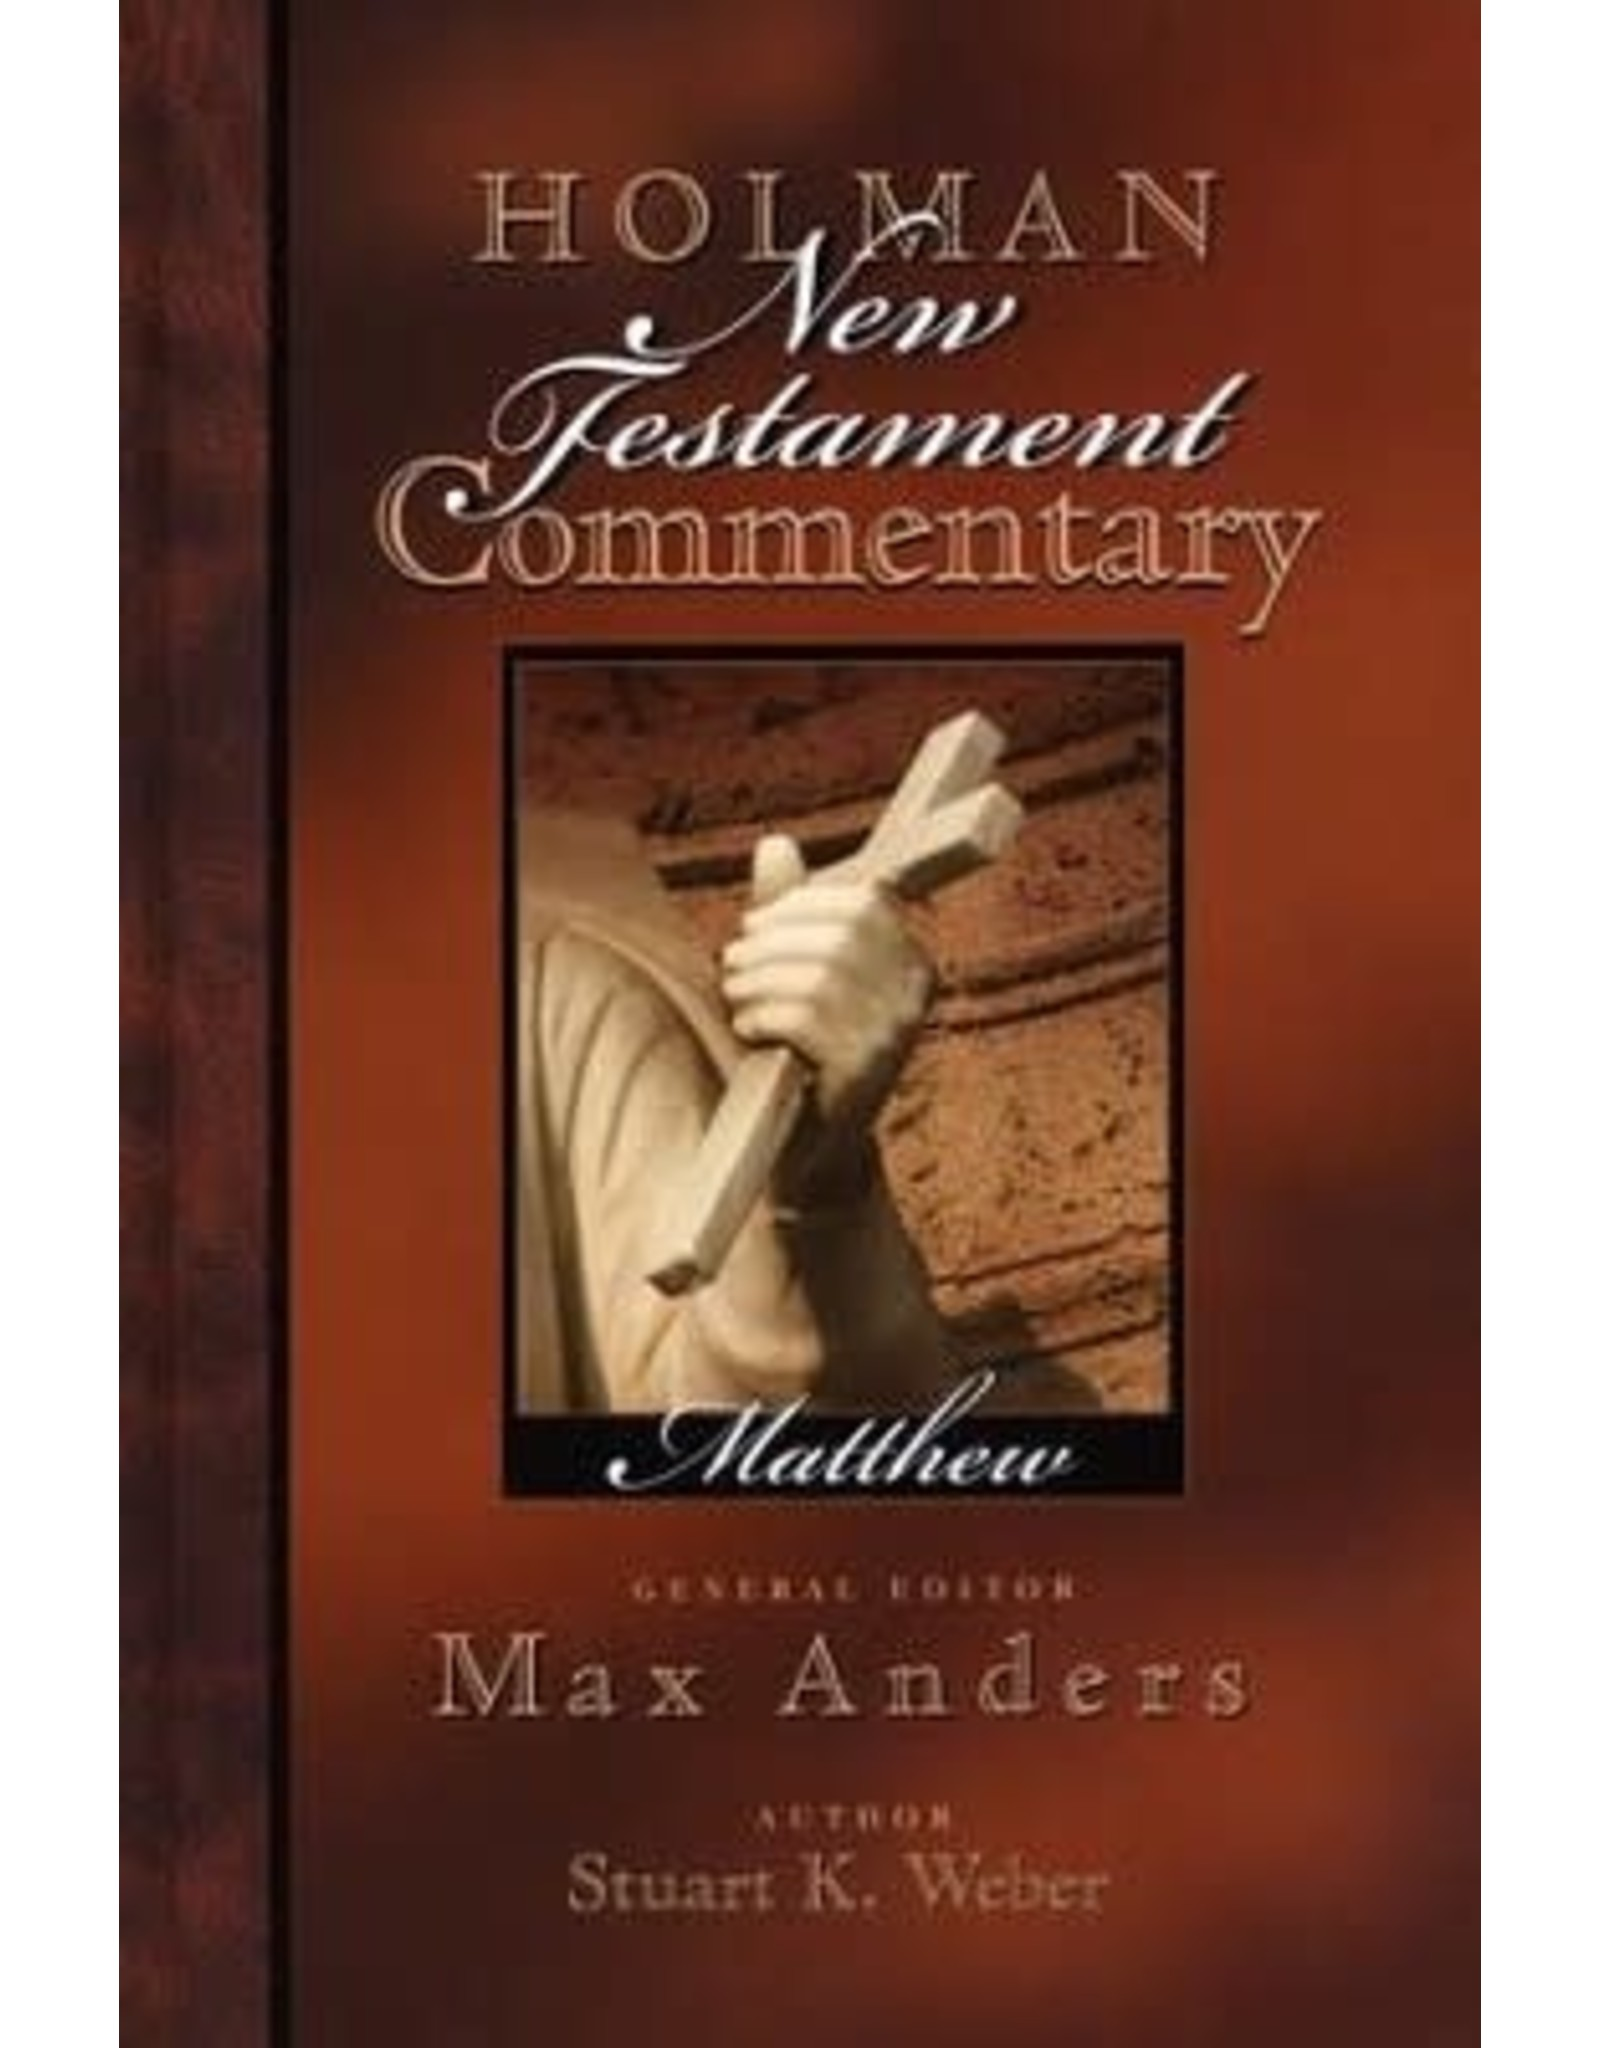 Anders Holman New Testament Commentary: Matthew